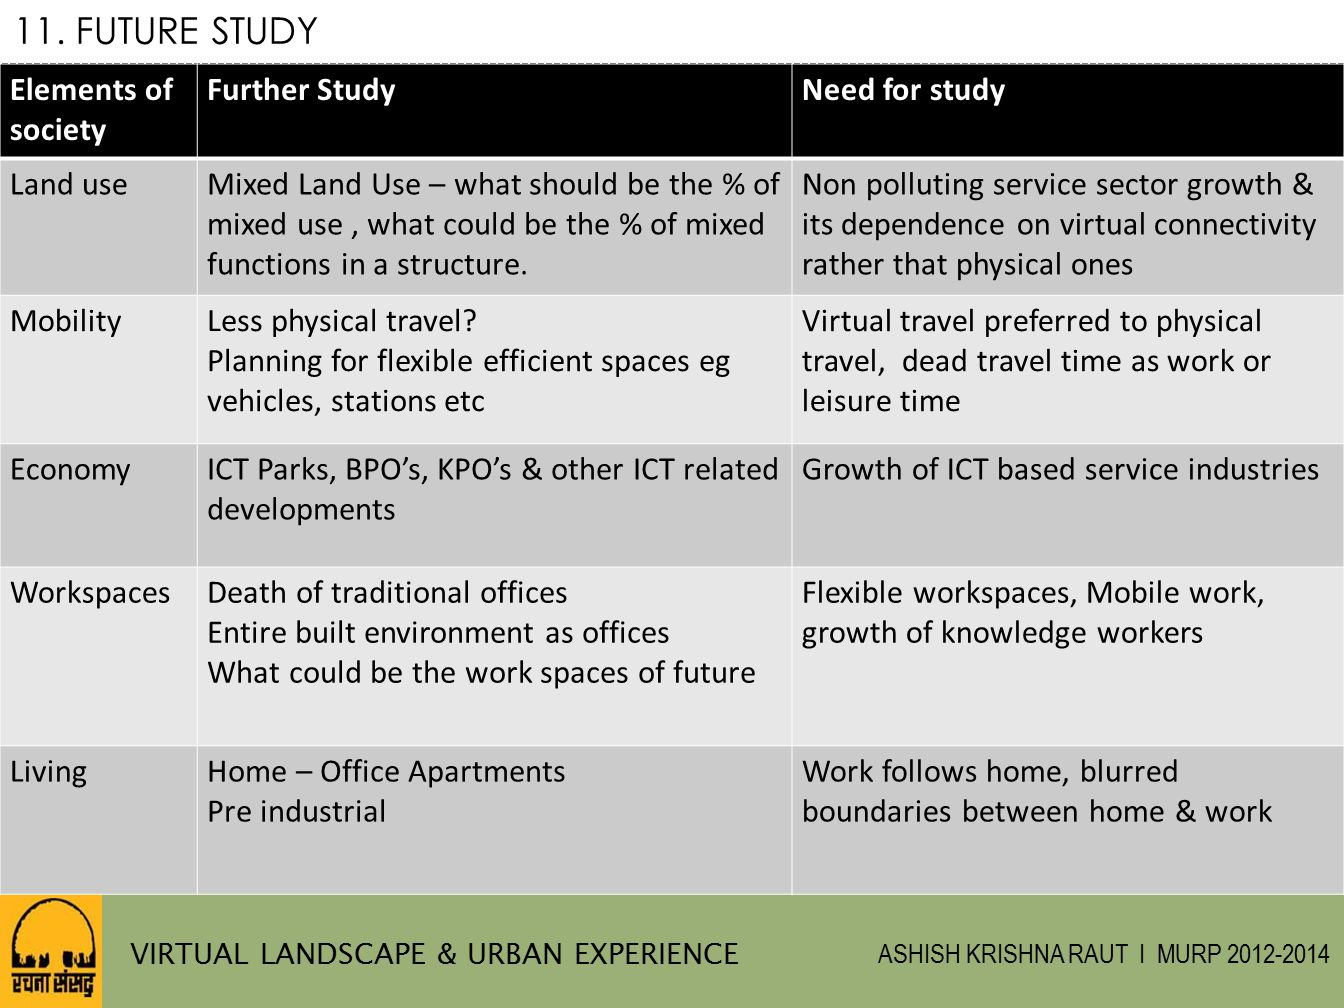 11. FUTURE STUDY Elements of society Further Study Need for study